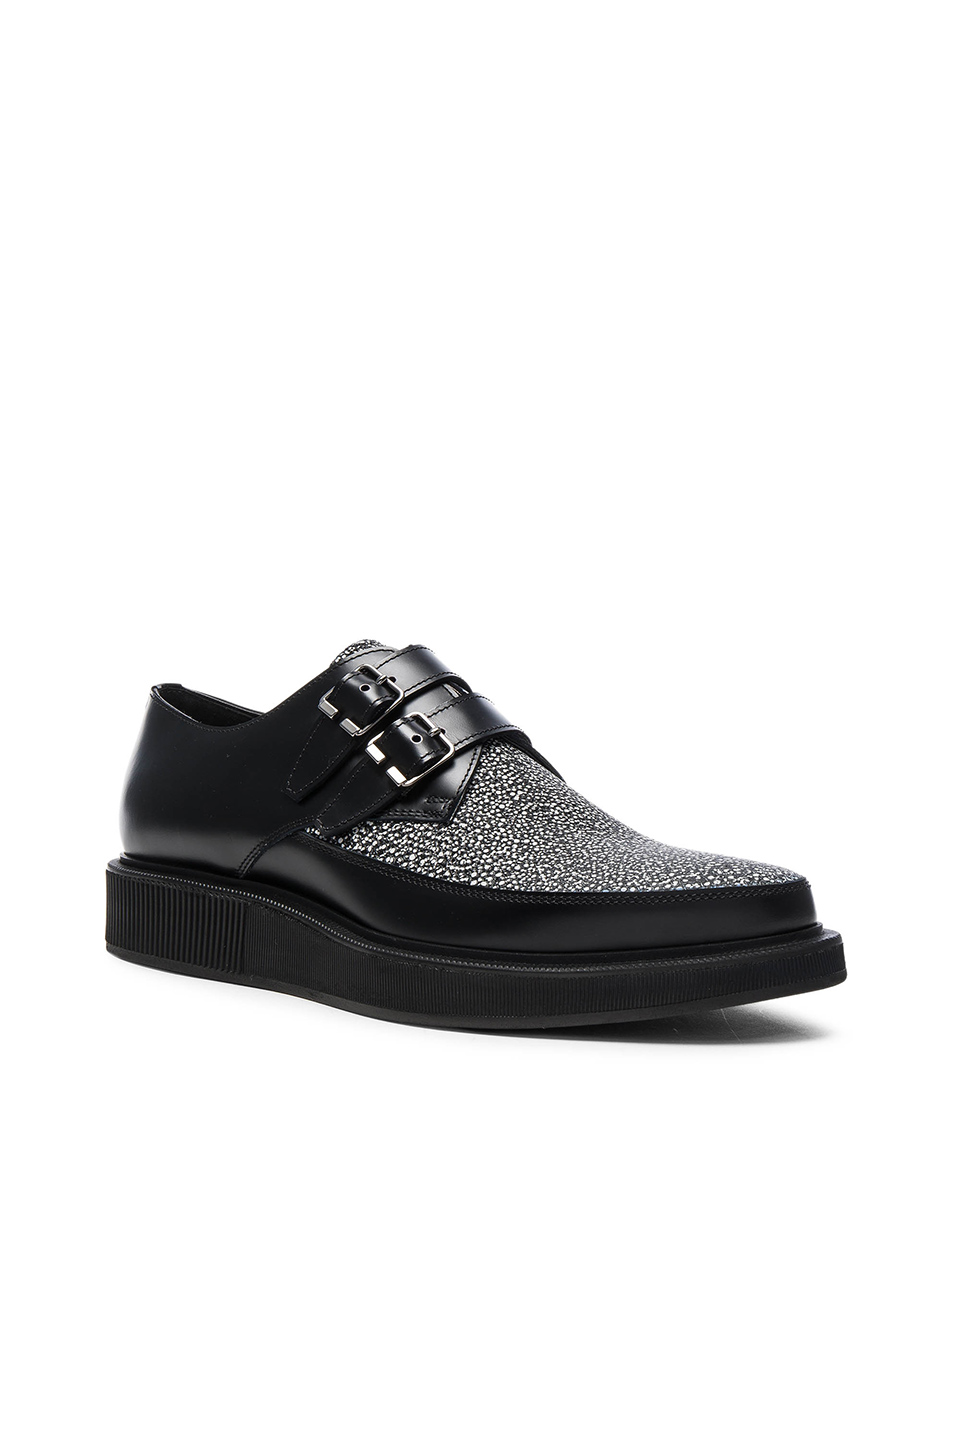 Clearance Discount Lanvin Contrast Leather Monk Shoes in Black Shopping Online Sale Online 0KwtVqk